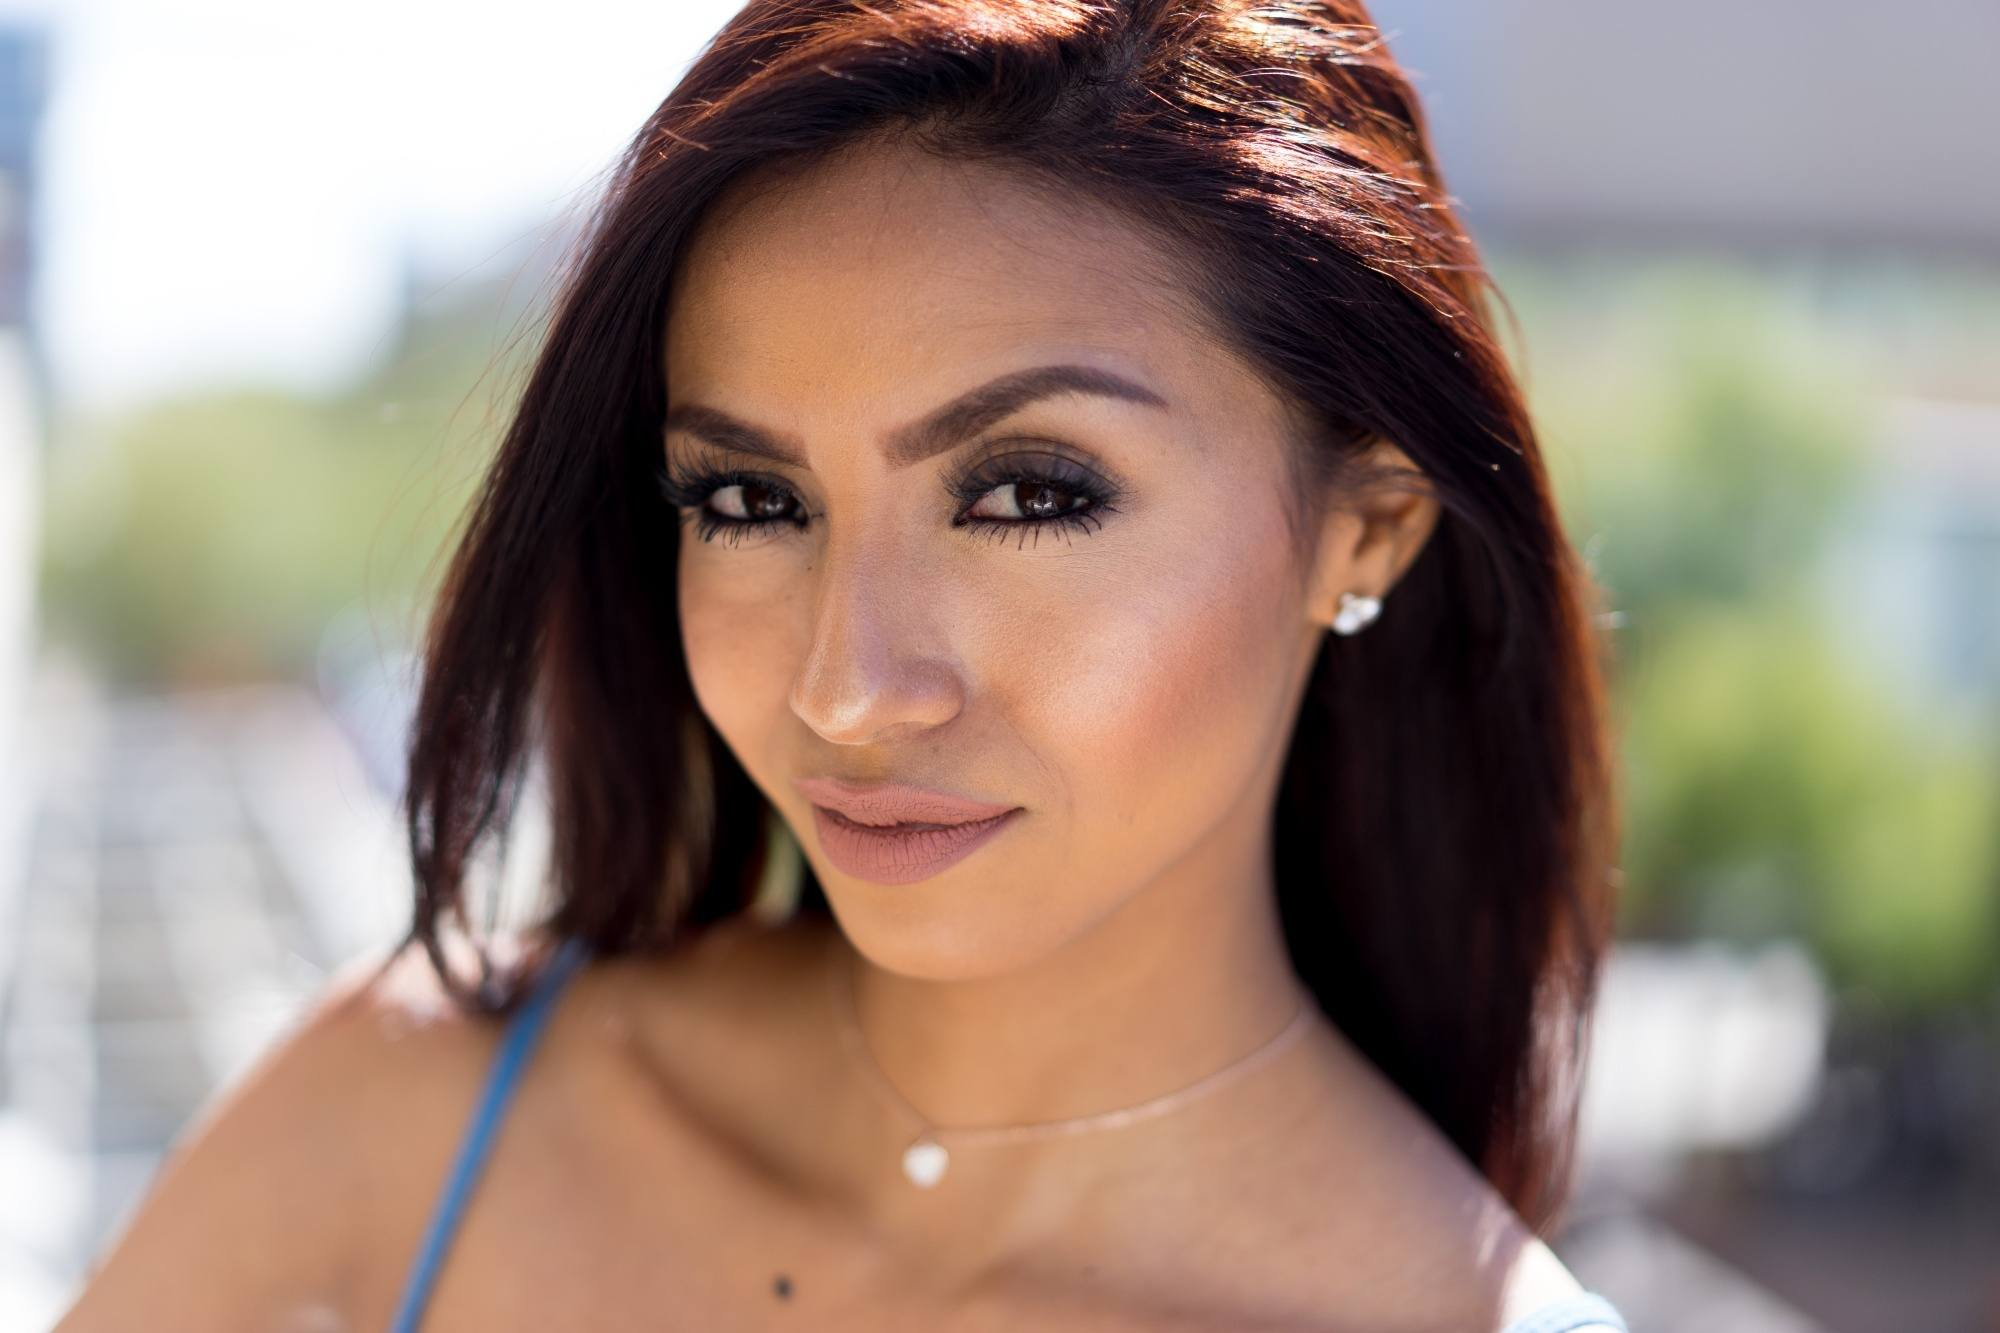 Woman with morena skin and burgundy hair